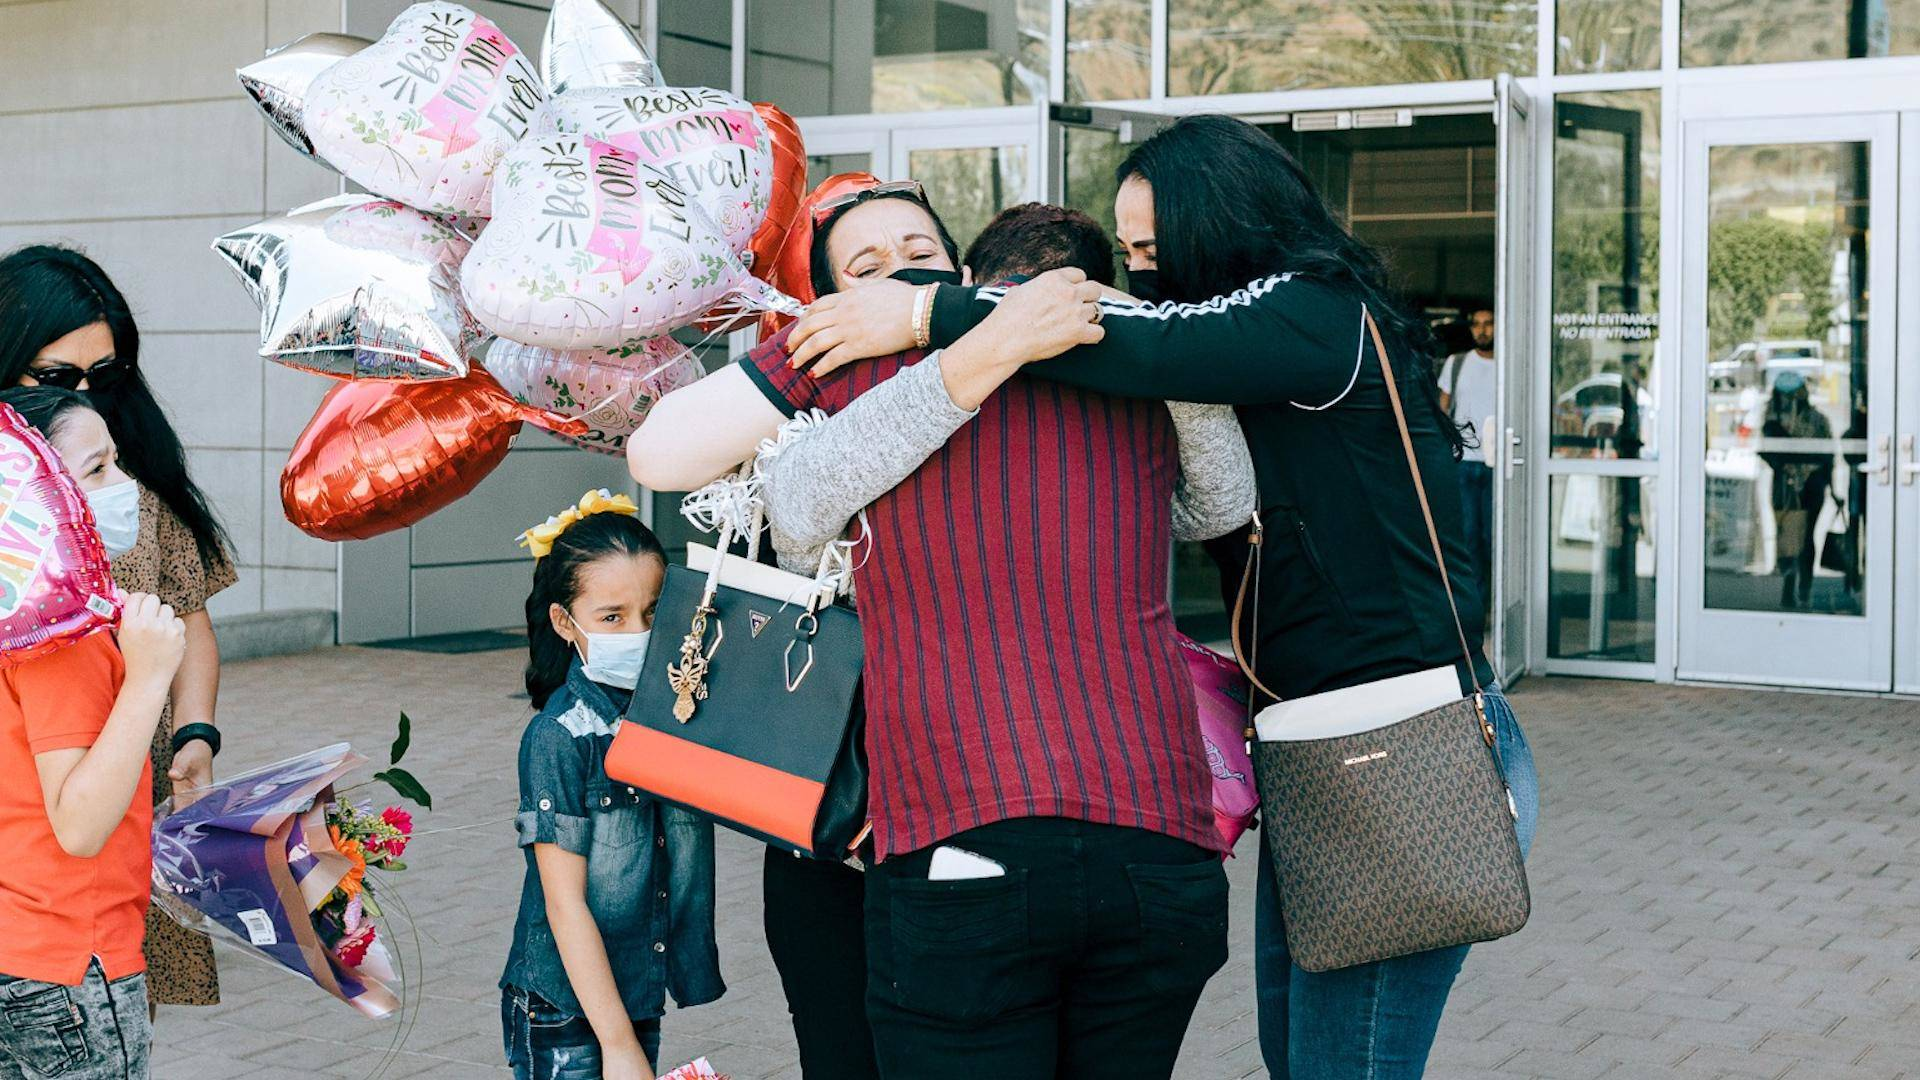 """Read more about the article """"They Were Tortured"""": 4 Families Torn Apart by Trump Are Reunited. 1,000+ Still Separated, Missing."""